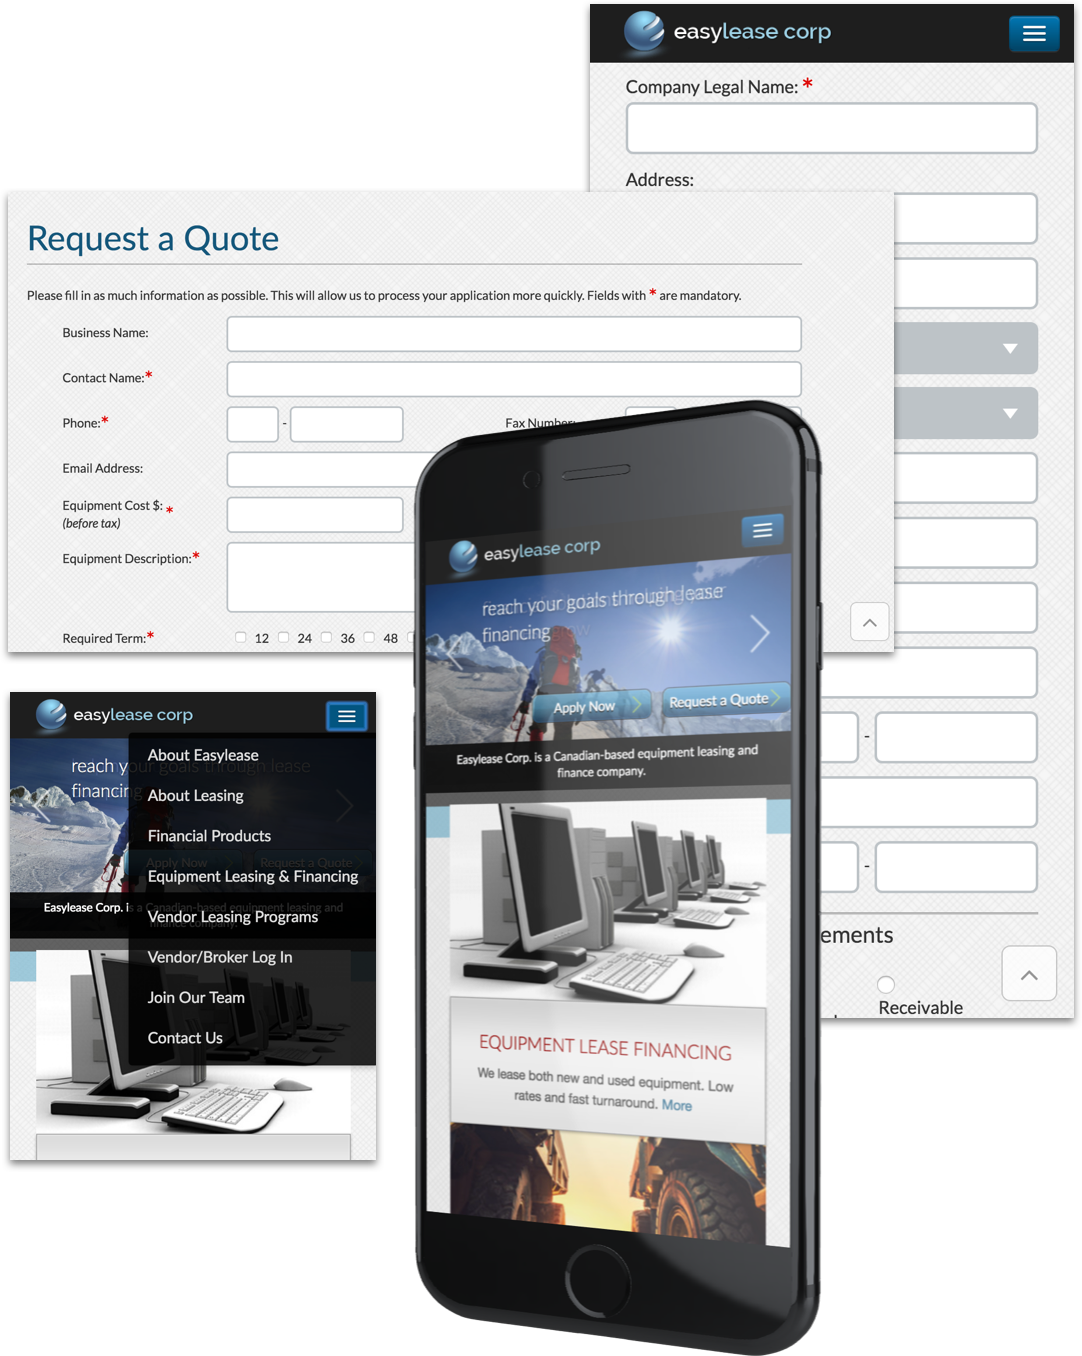 Screenshots of EasyLease Corp mobile website view and request a quote page.